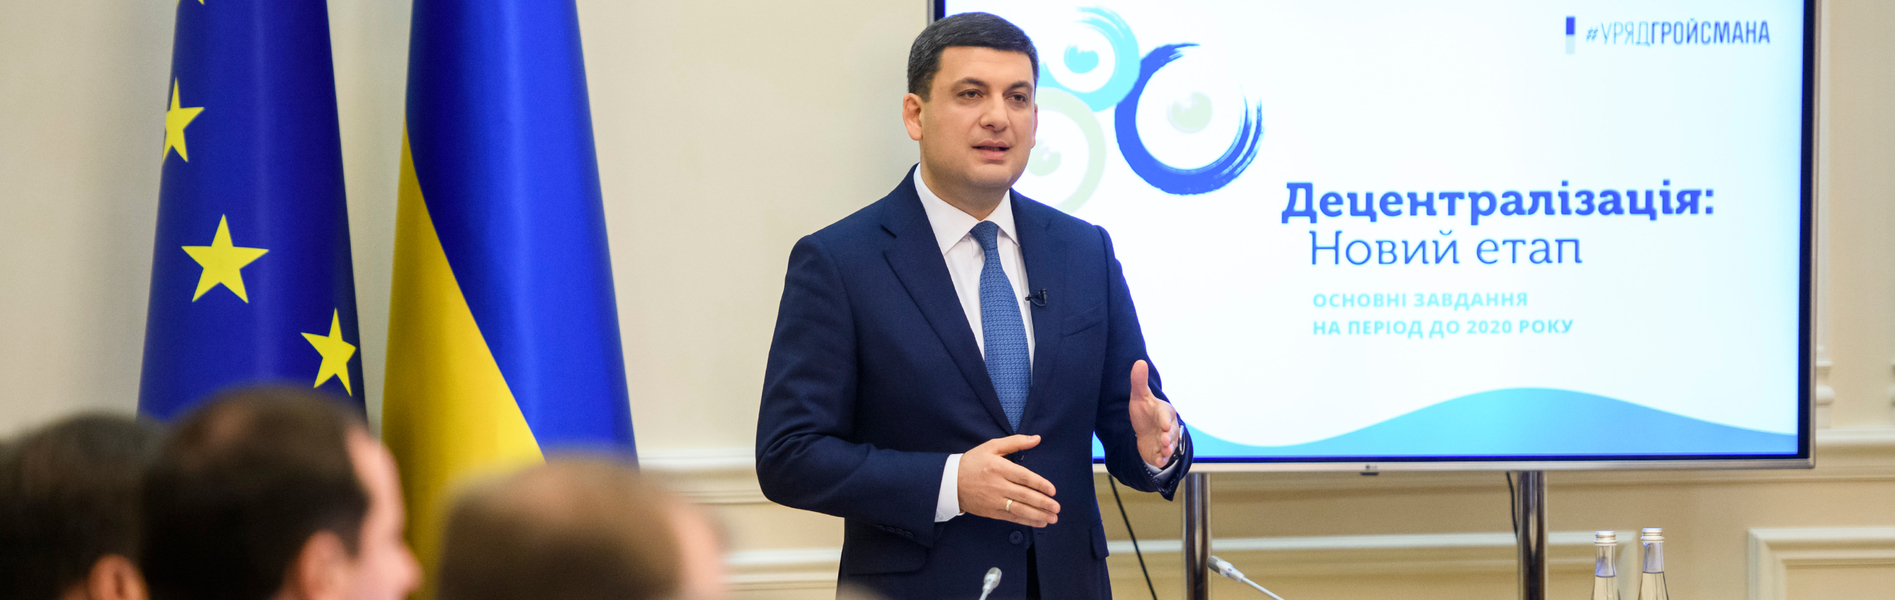 The Government is updating the action plan for decentralisation, initiating a new reform phase, - Volodymyr Groysman